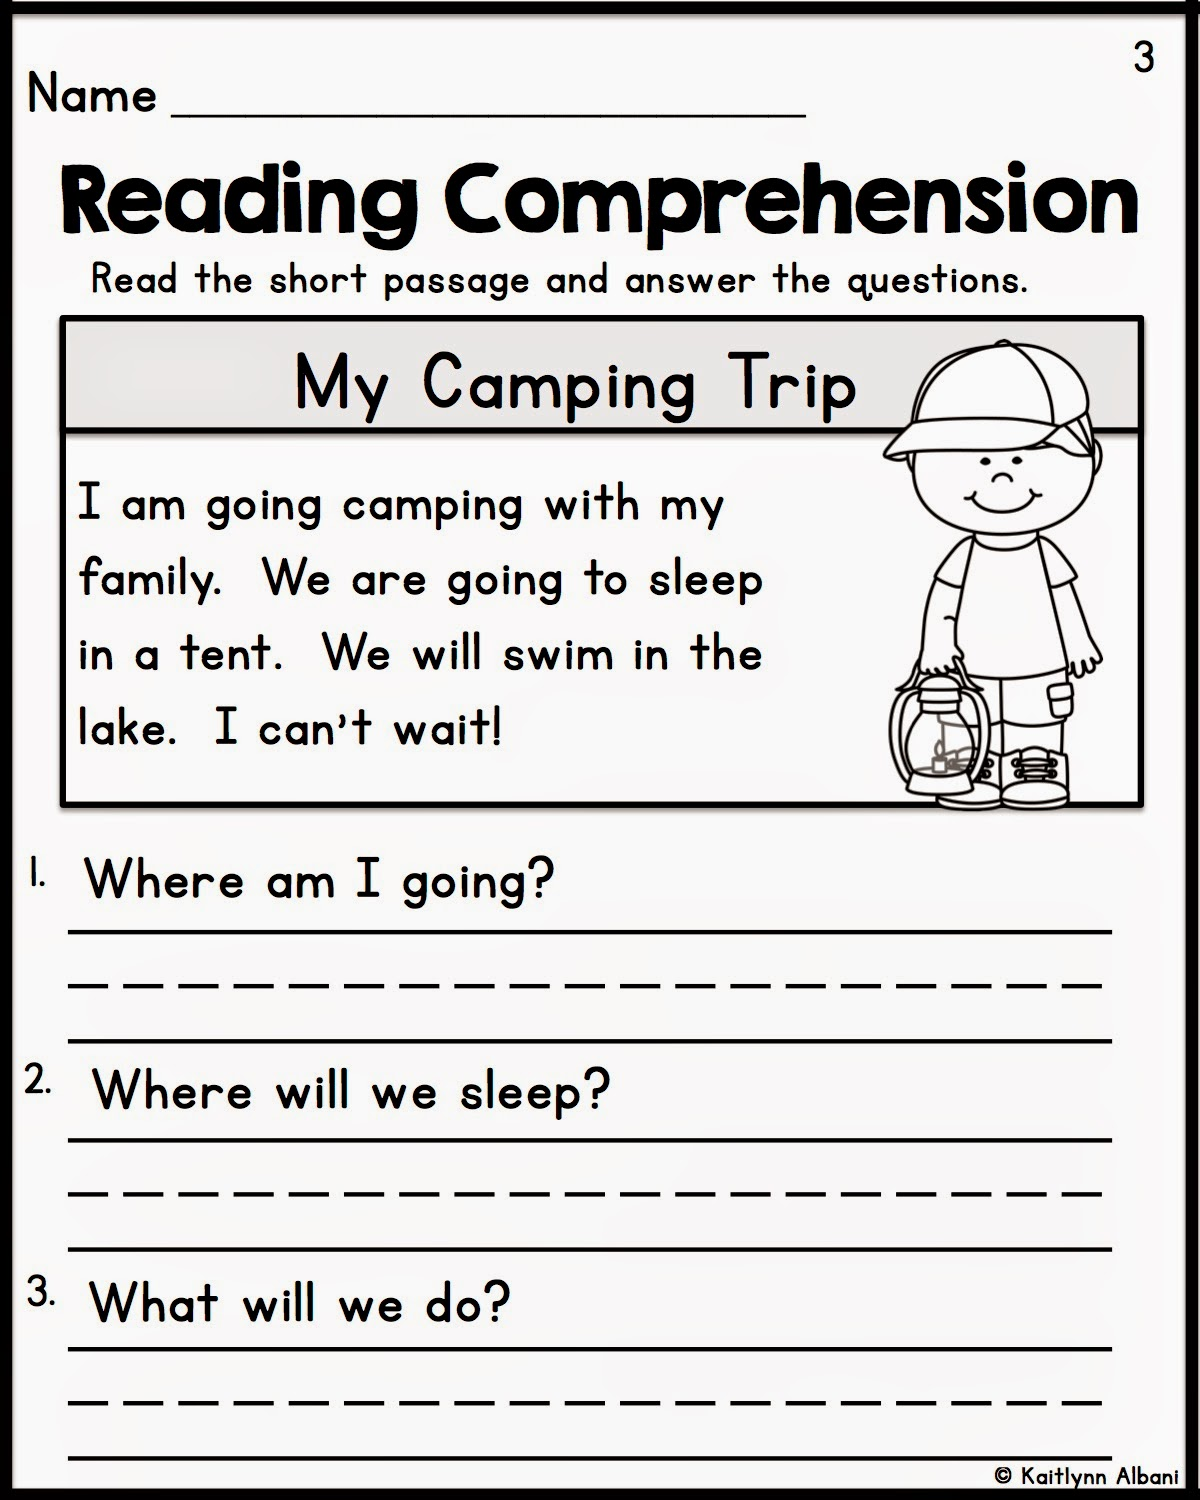 Worksheet Kindergarten Reading Comprehension Passages printable kindergarten reading comprehension worksheets scalien free scalien